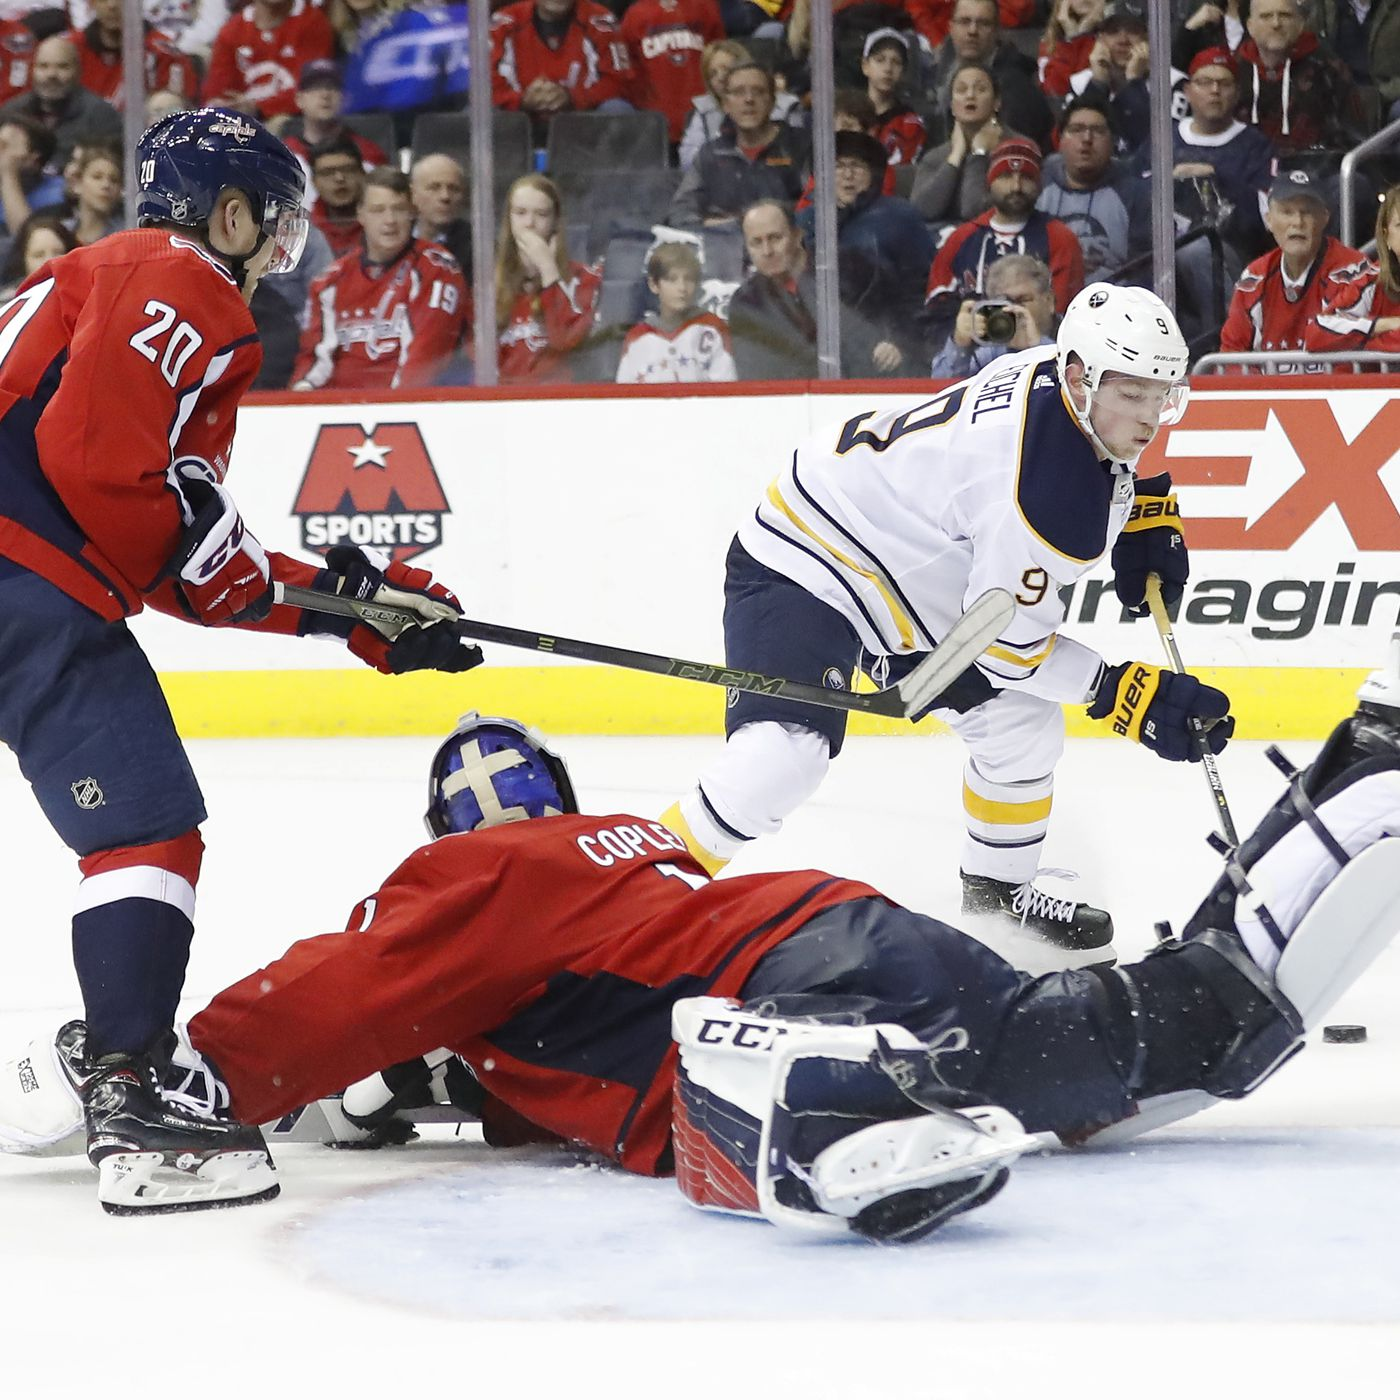 Preview  Buffalo Sabres look to rebound against Capitals 60f5cf27a7dc